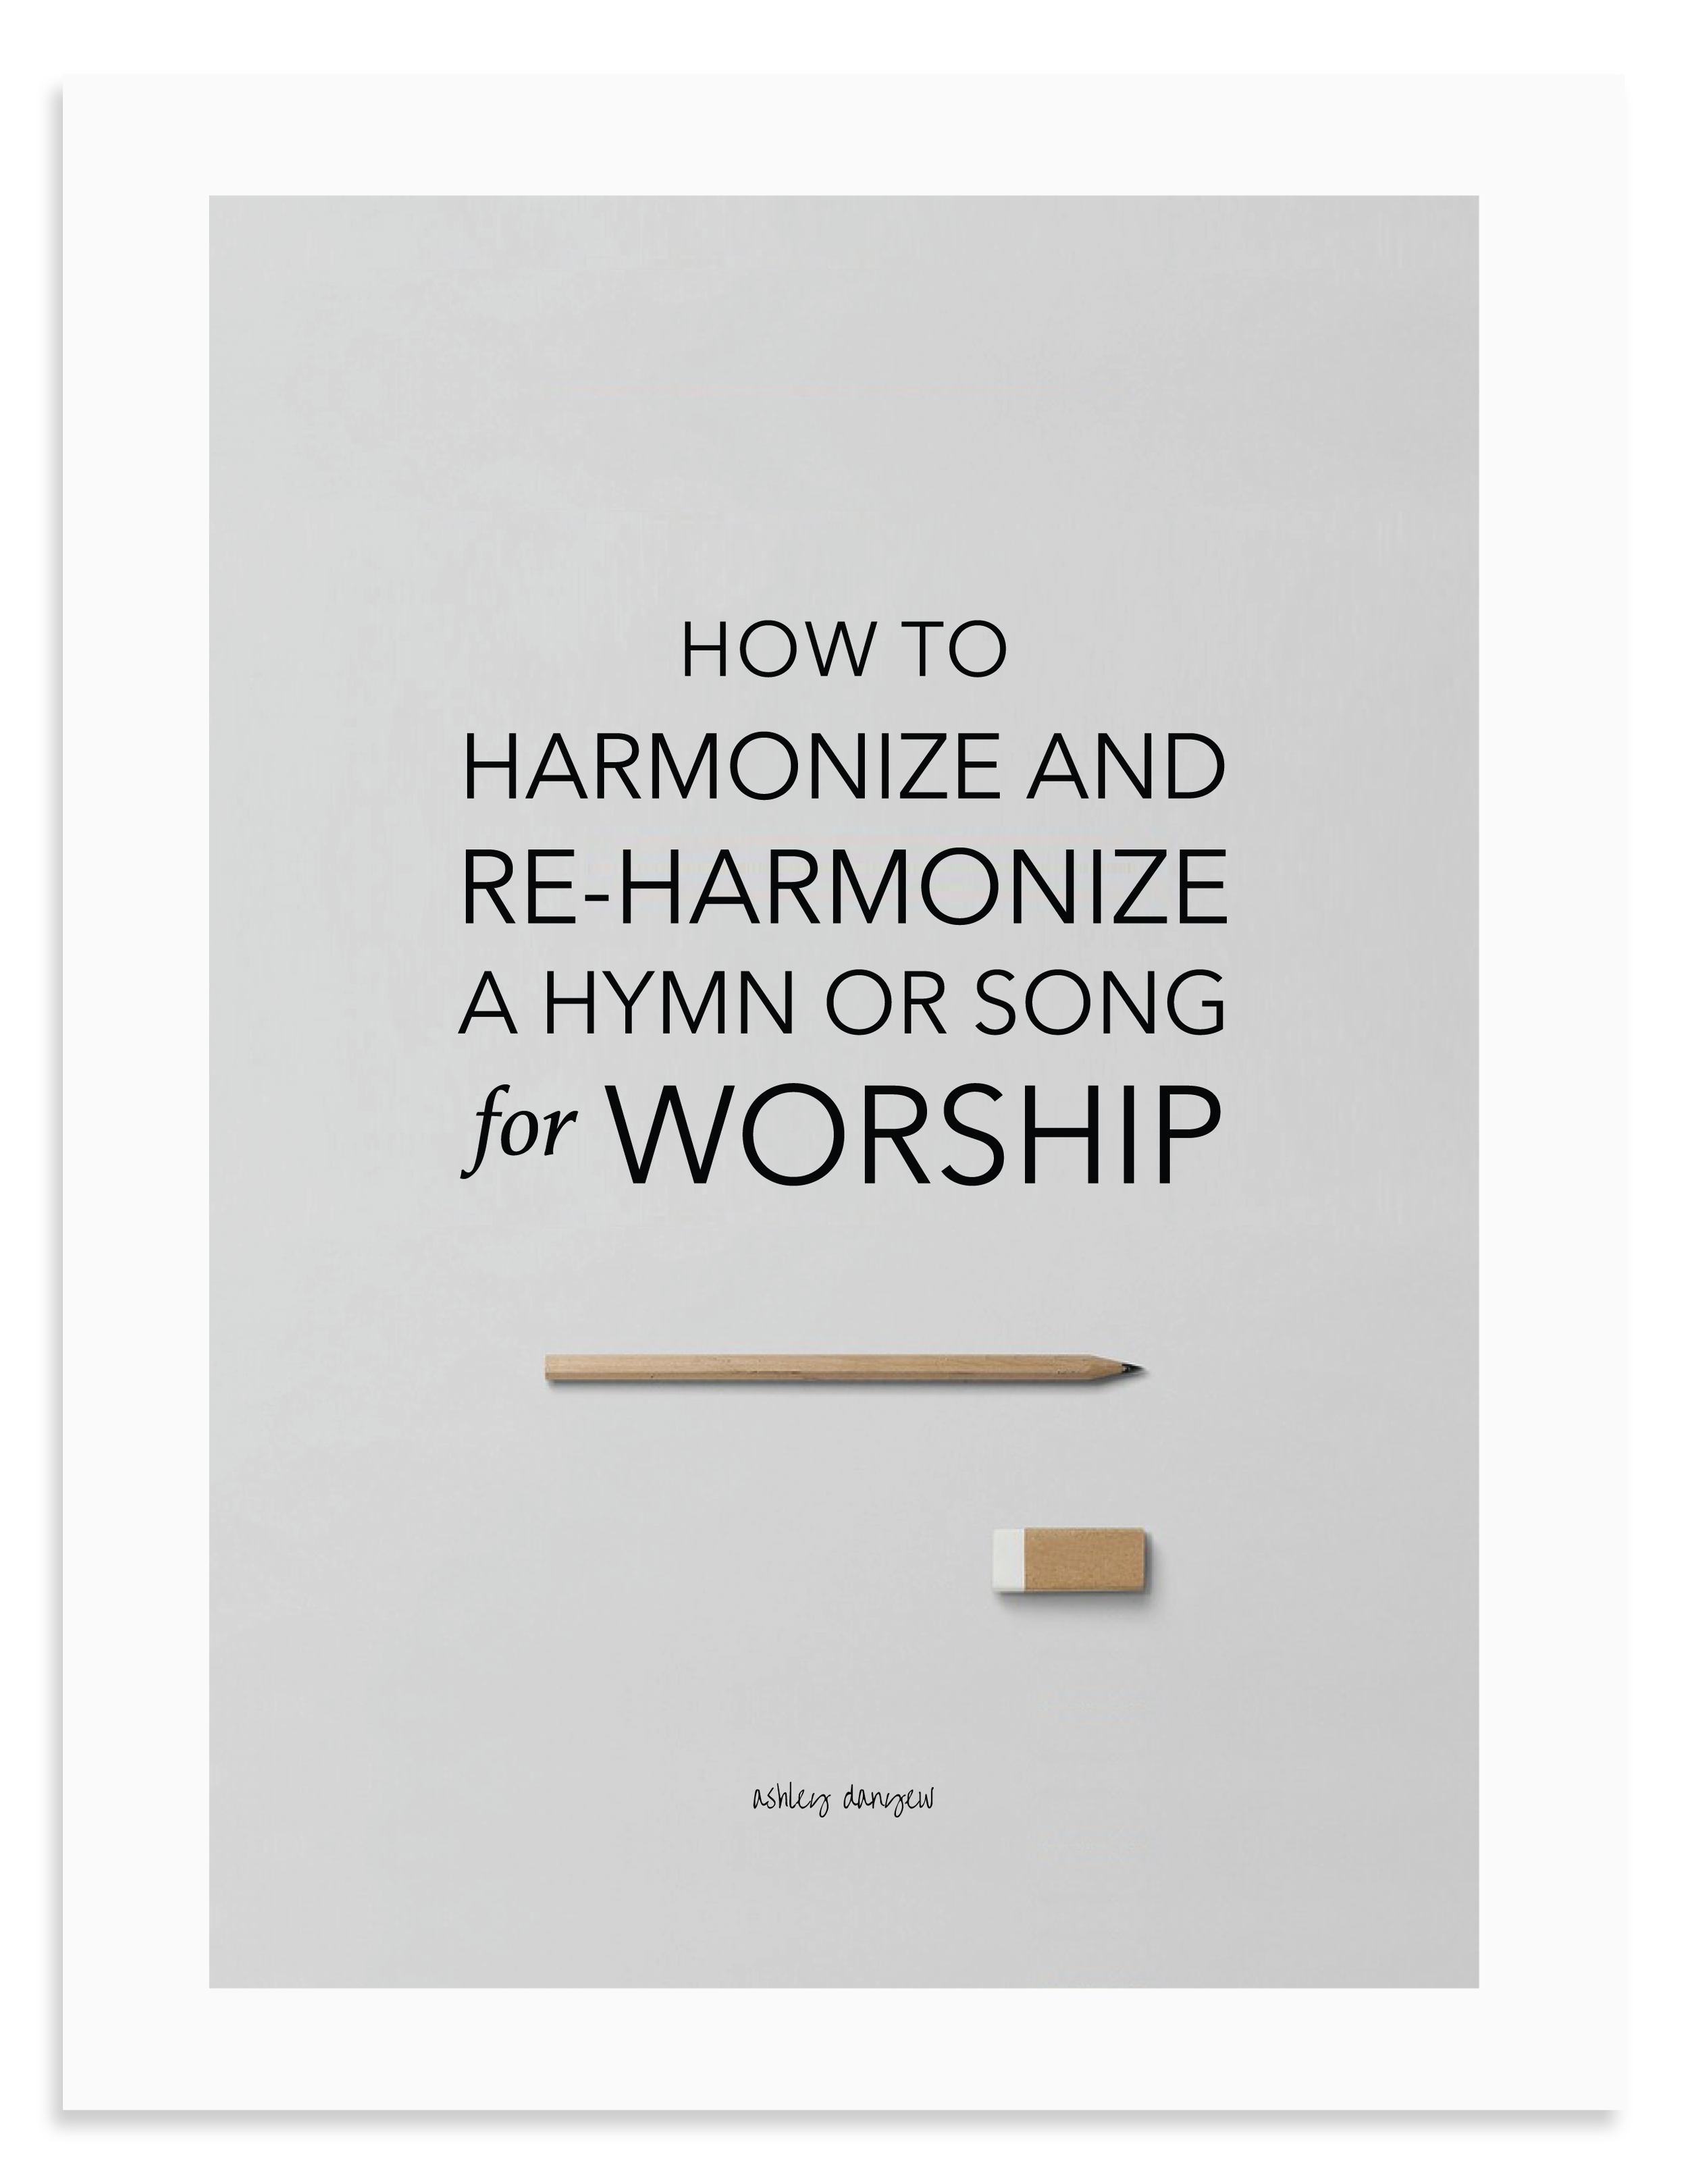 How to Harmonize and Re-Harmonize a Hymn or Song for Worship Workbook-25.png